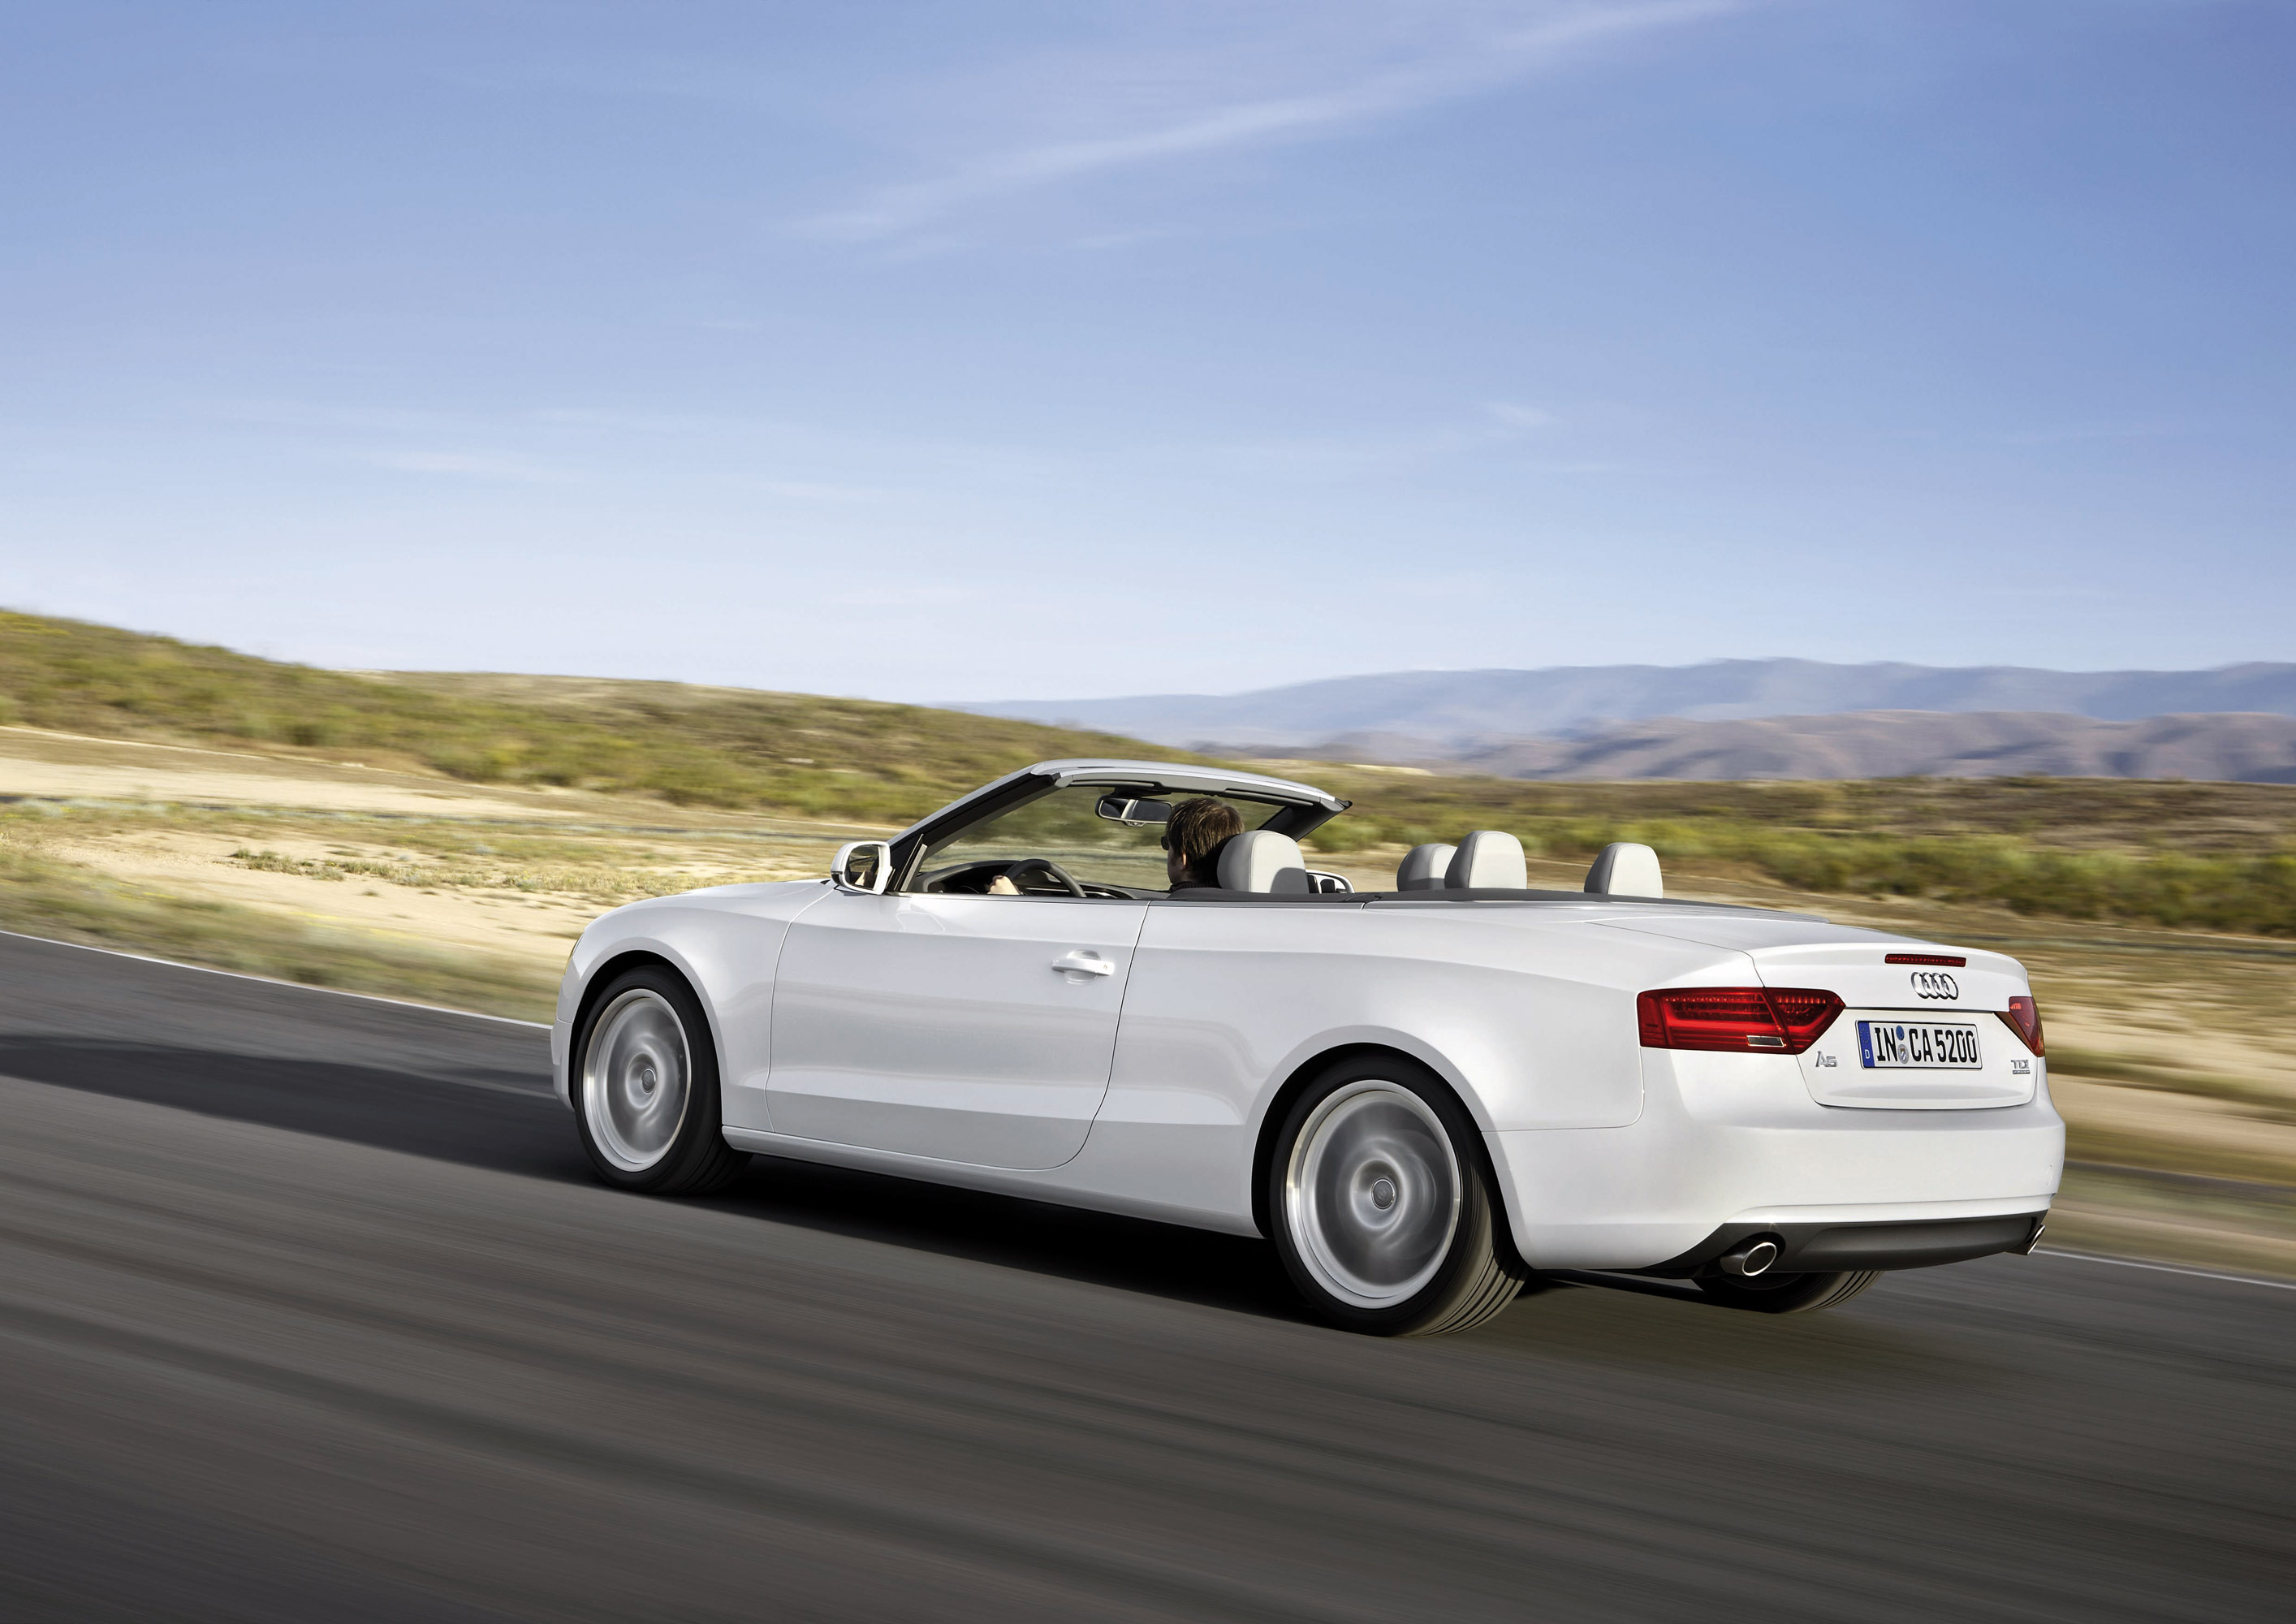 2012 audi a5 s5 facelift sportback coupe cabriolet. Black Bedroom Furniture Sets. Home Design Ideas